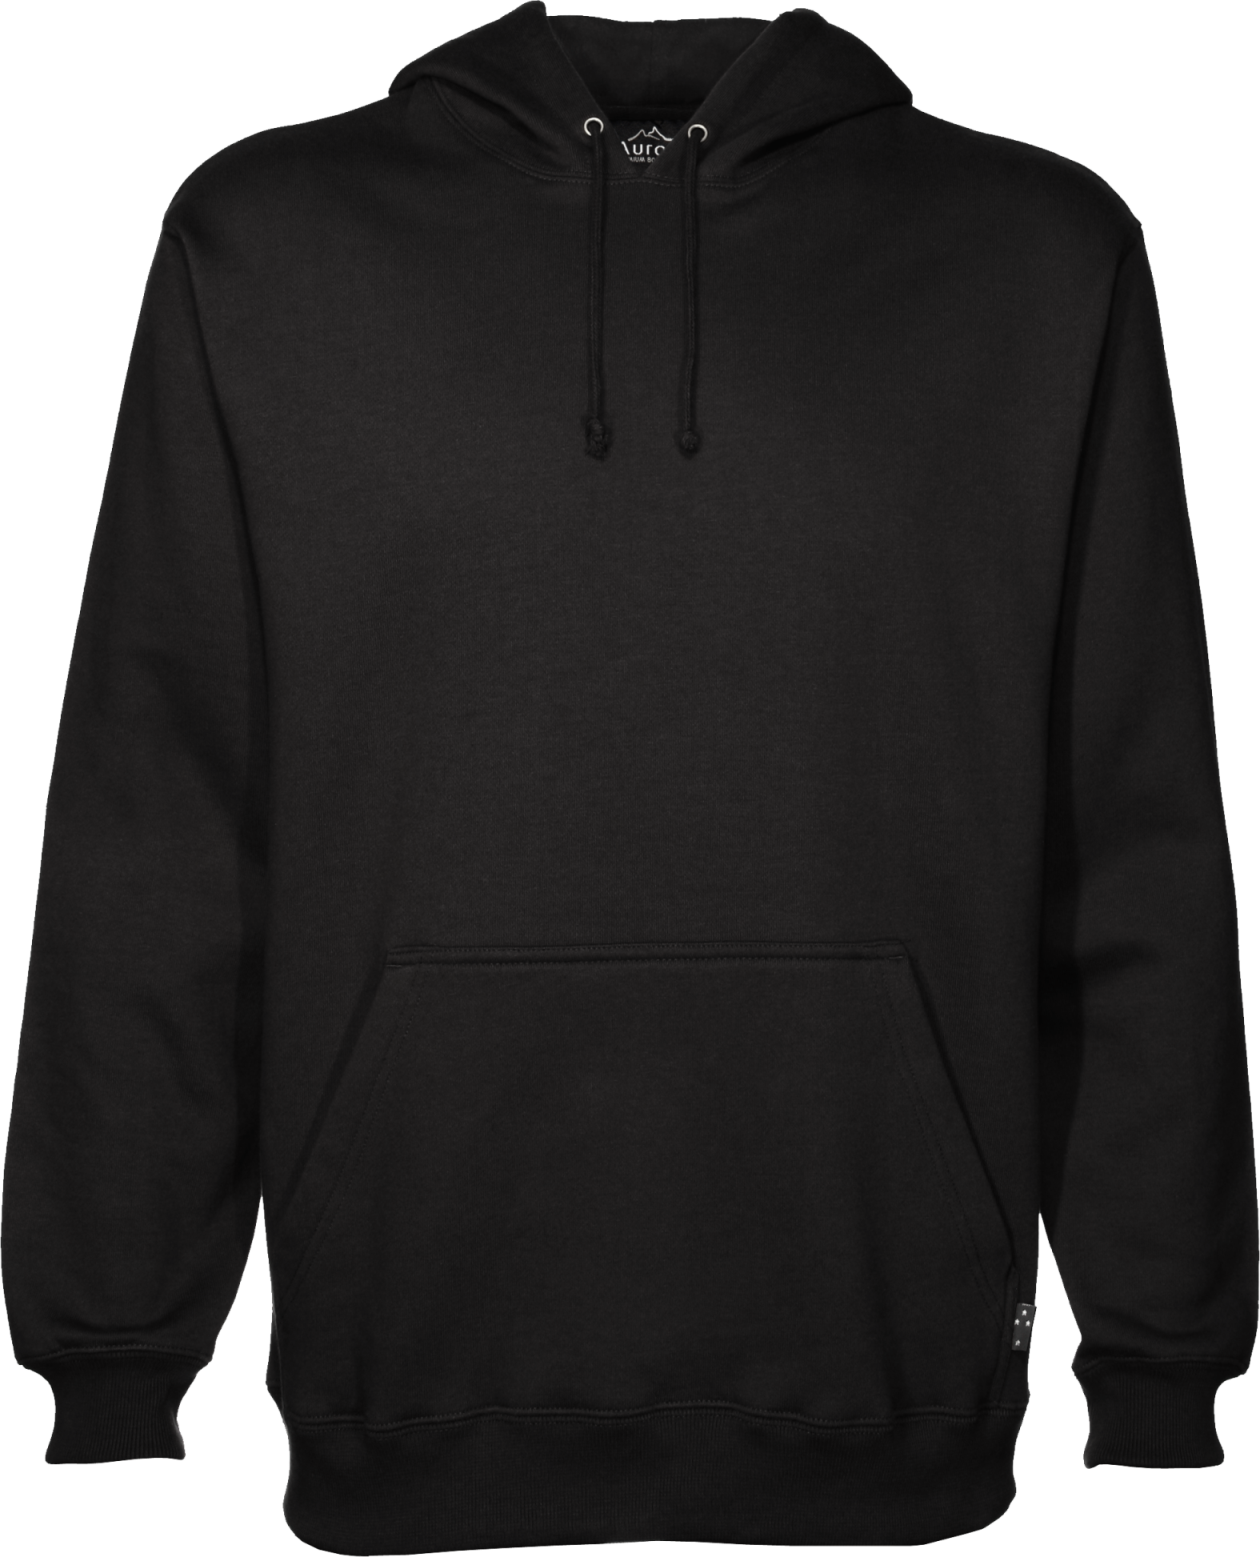 clipart library transparent hoodie blank black #105909726